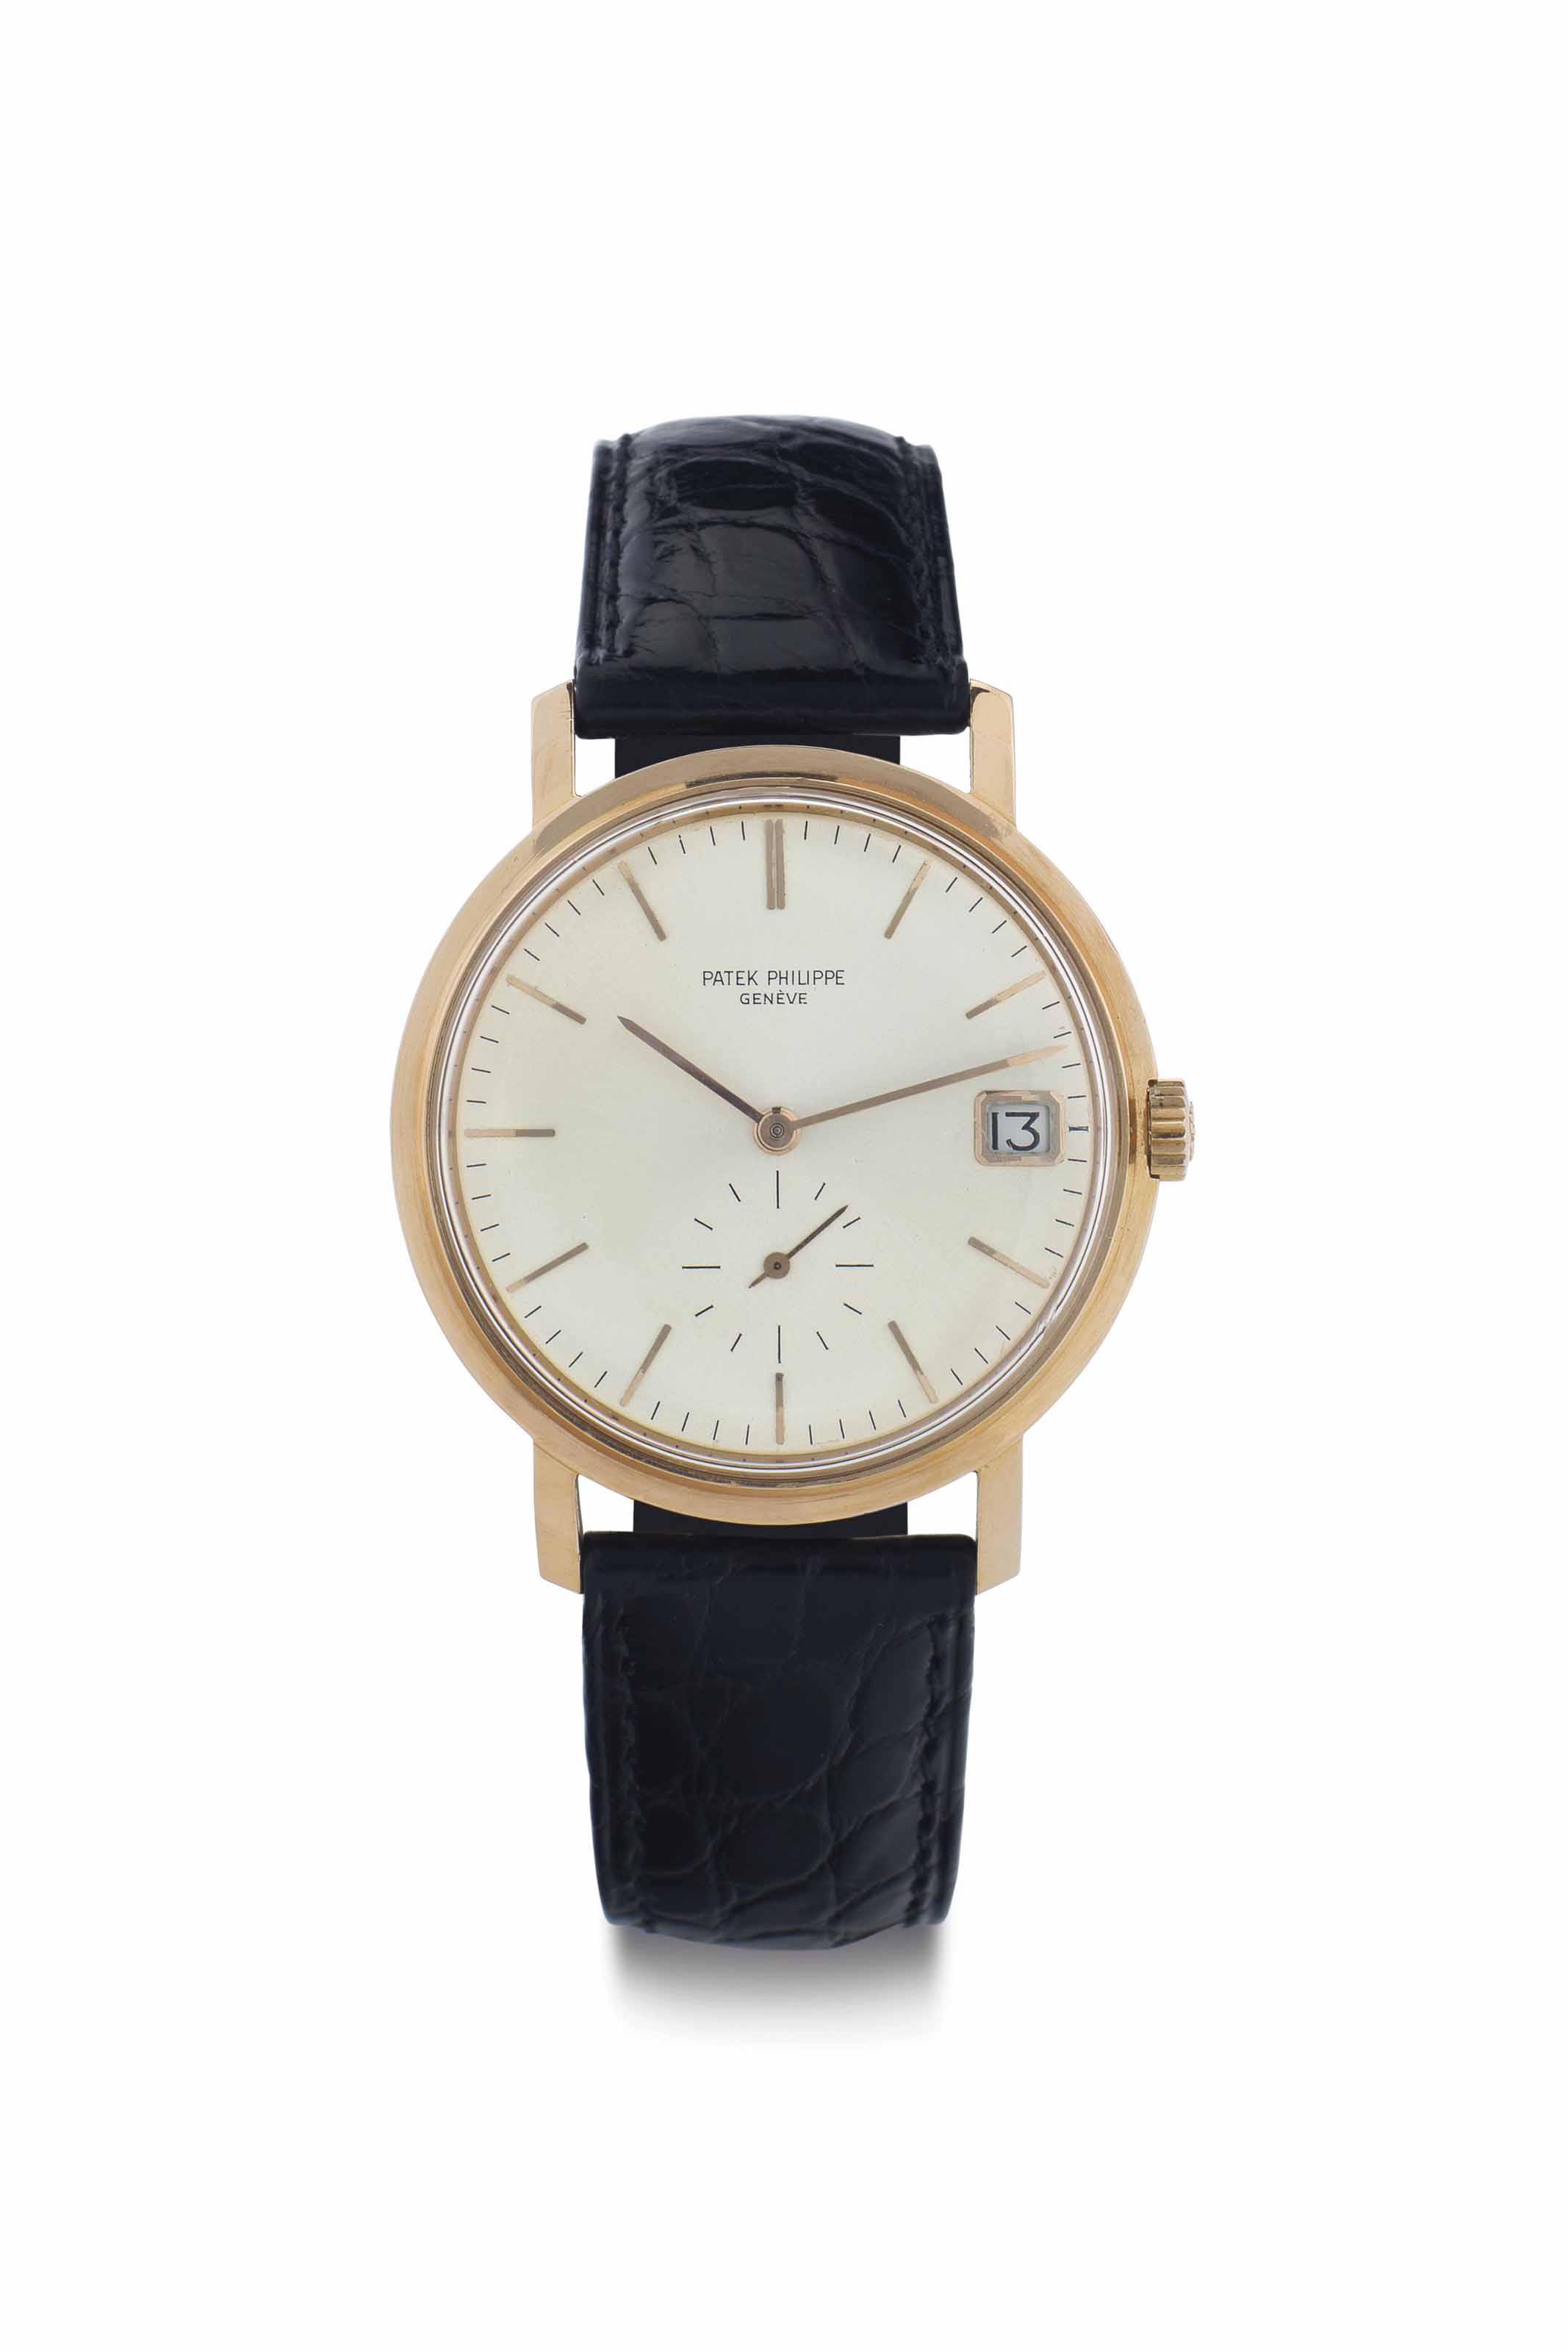 Patek Philippe. A Fine and Rare 18k Pink Gold Automatic Wristwatch with Date